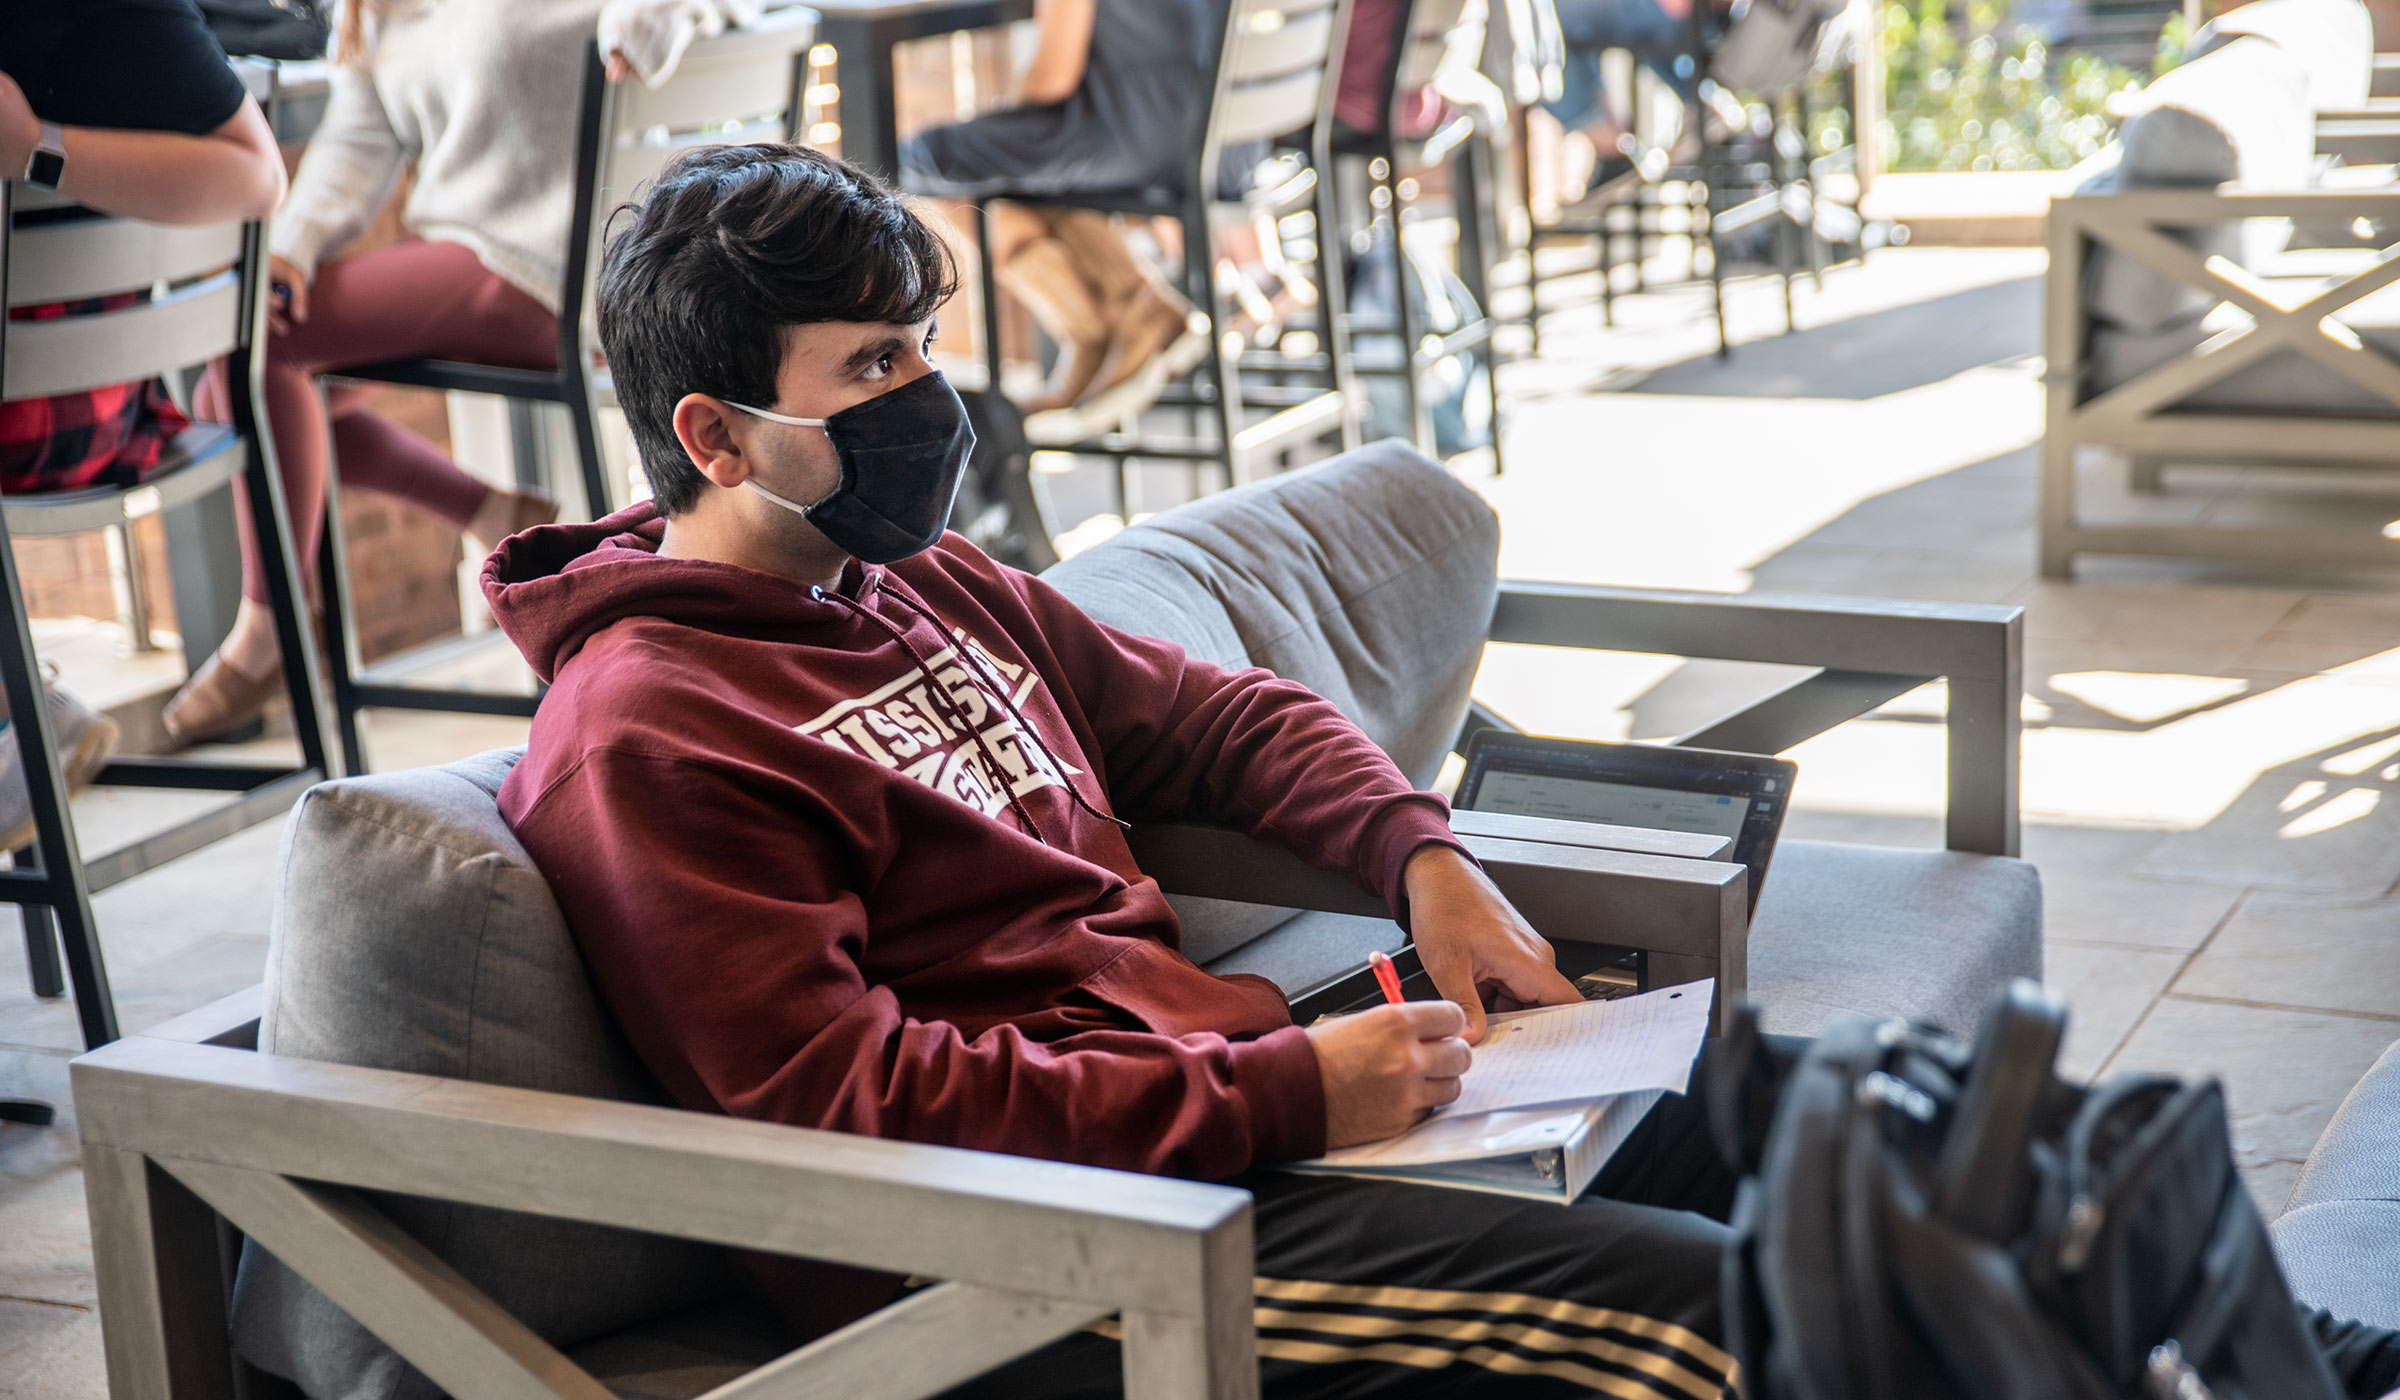 Software Engineering major Aaron Williams studies at one of the couches at Colvard Union's the recently covered porch space.